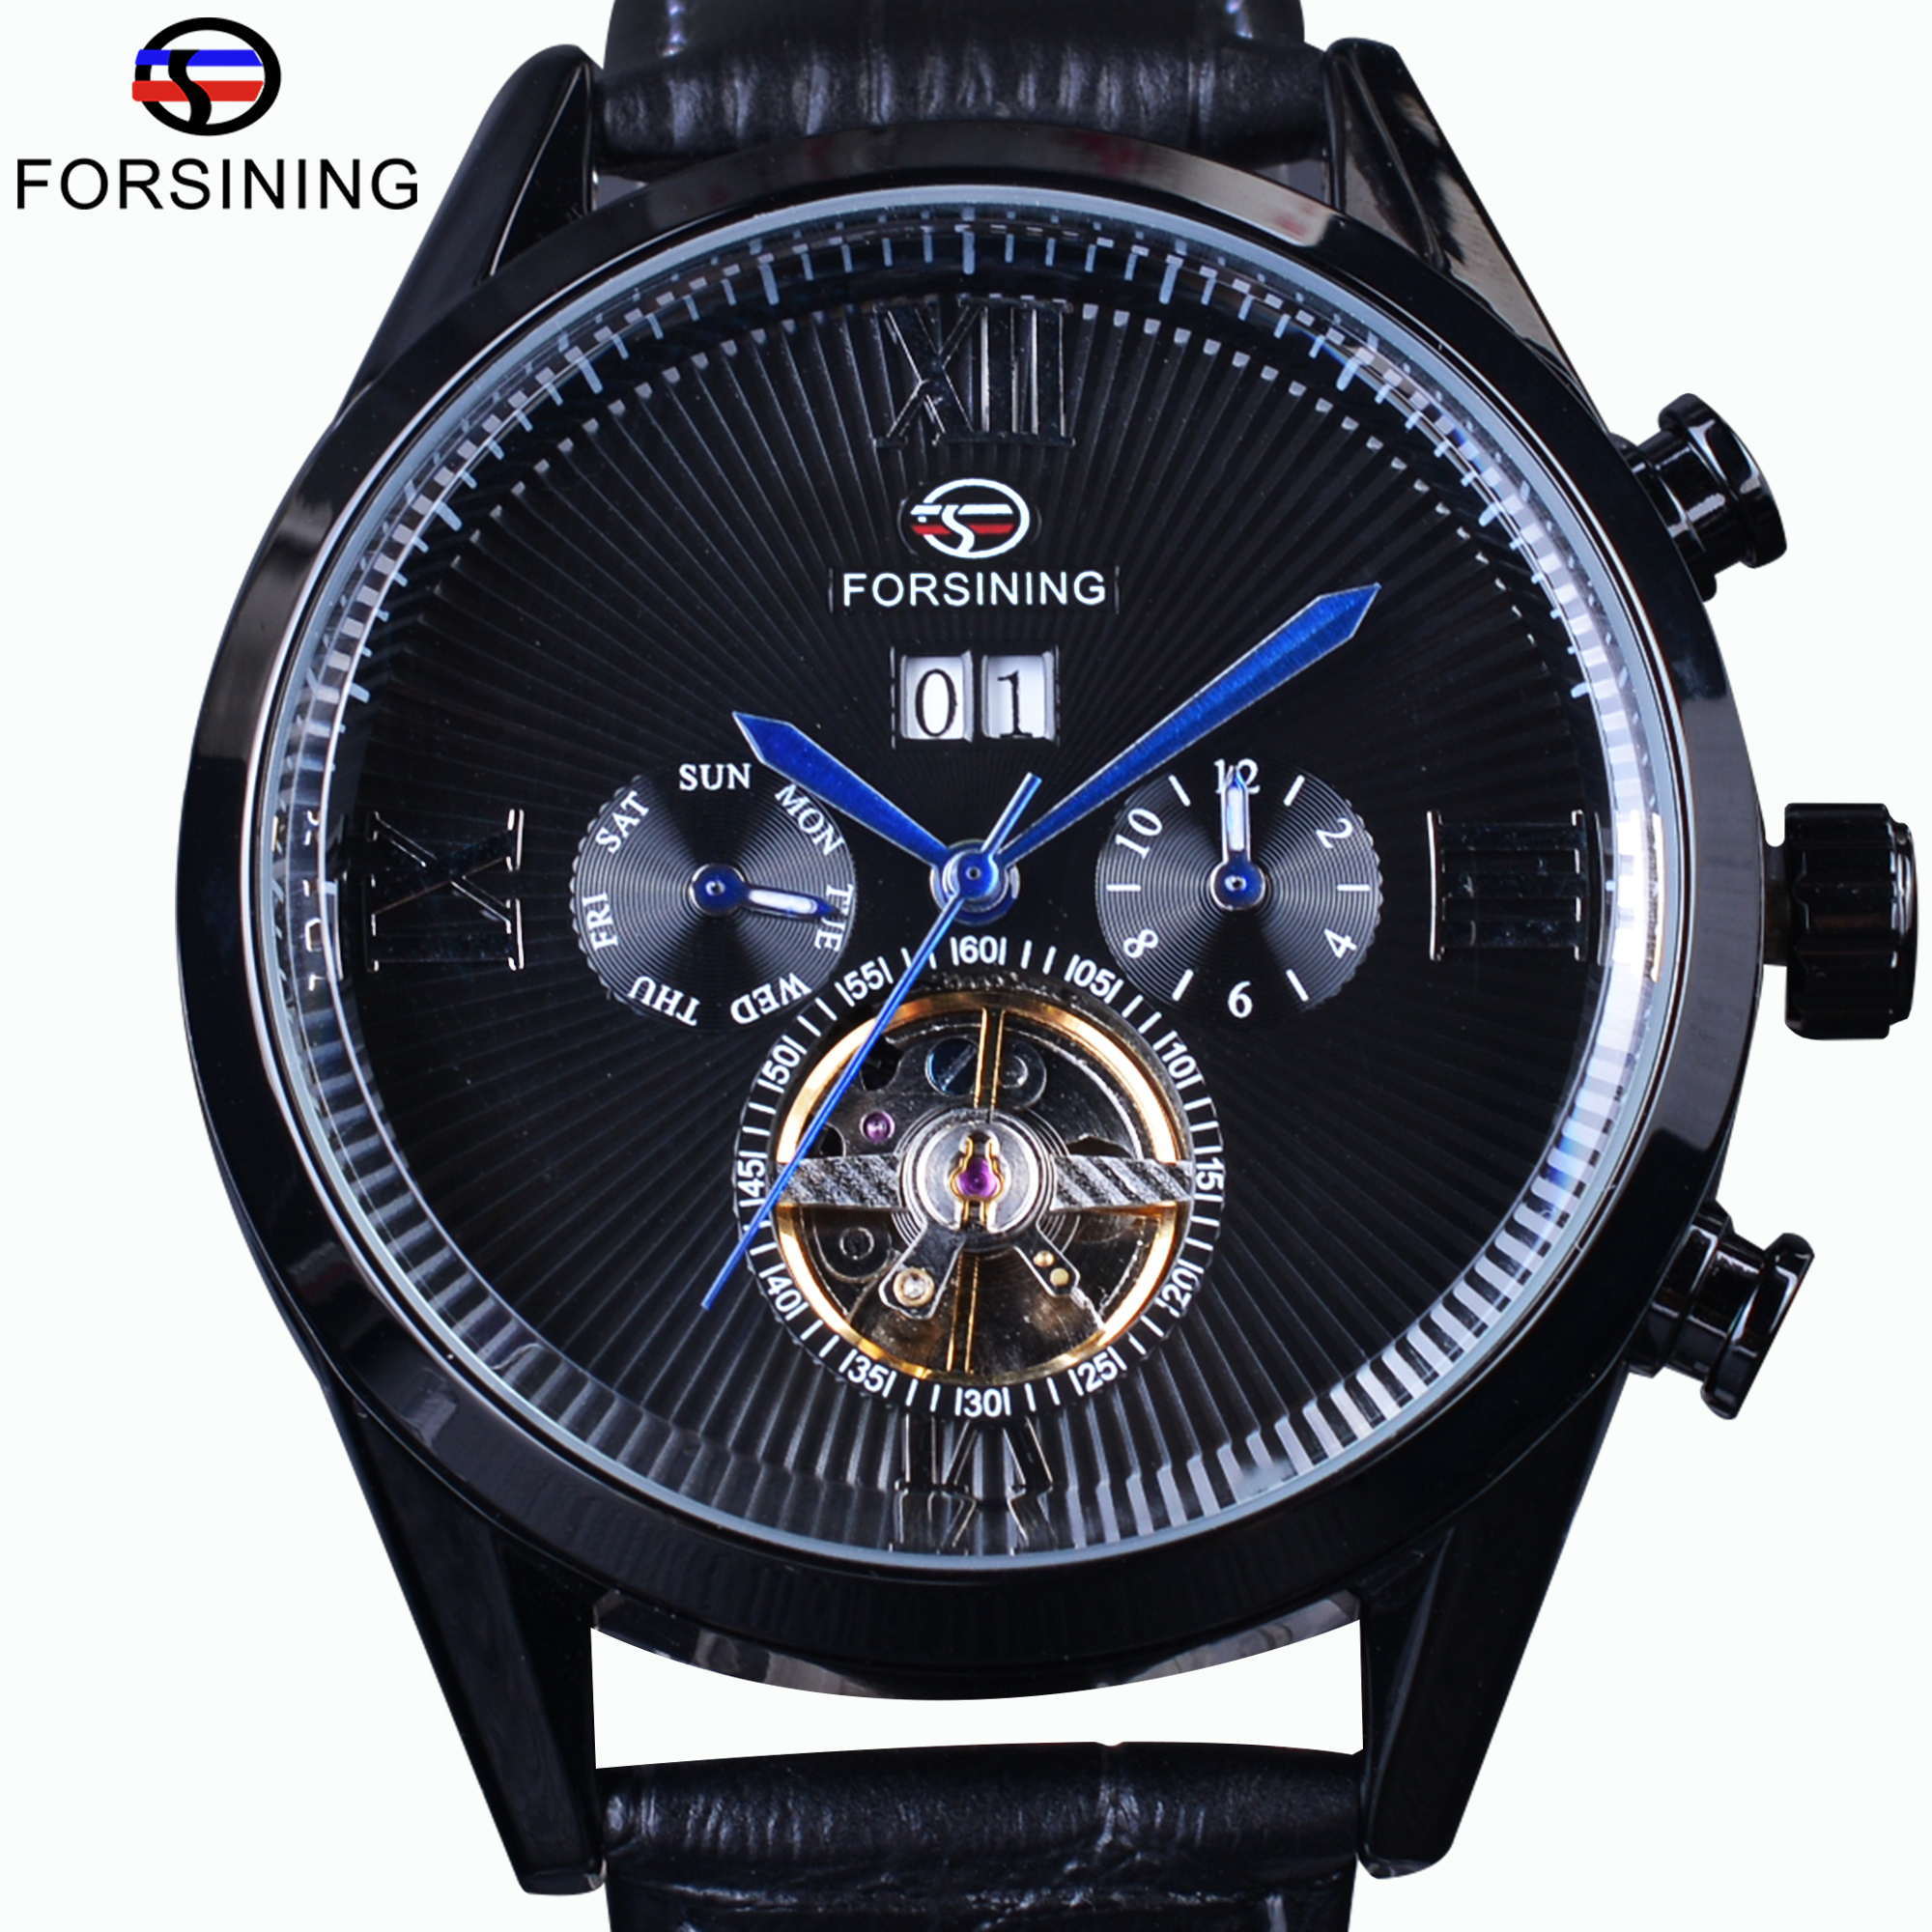 Forsining Black Genuine Leather Blue Hands Steampunk Tourbillion Streamlined Dial Automatic Watch Mens Watches Top Brand Luxury стереоусилитель мощности coda s5 5 black